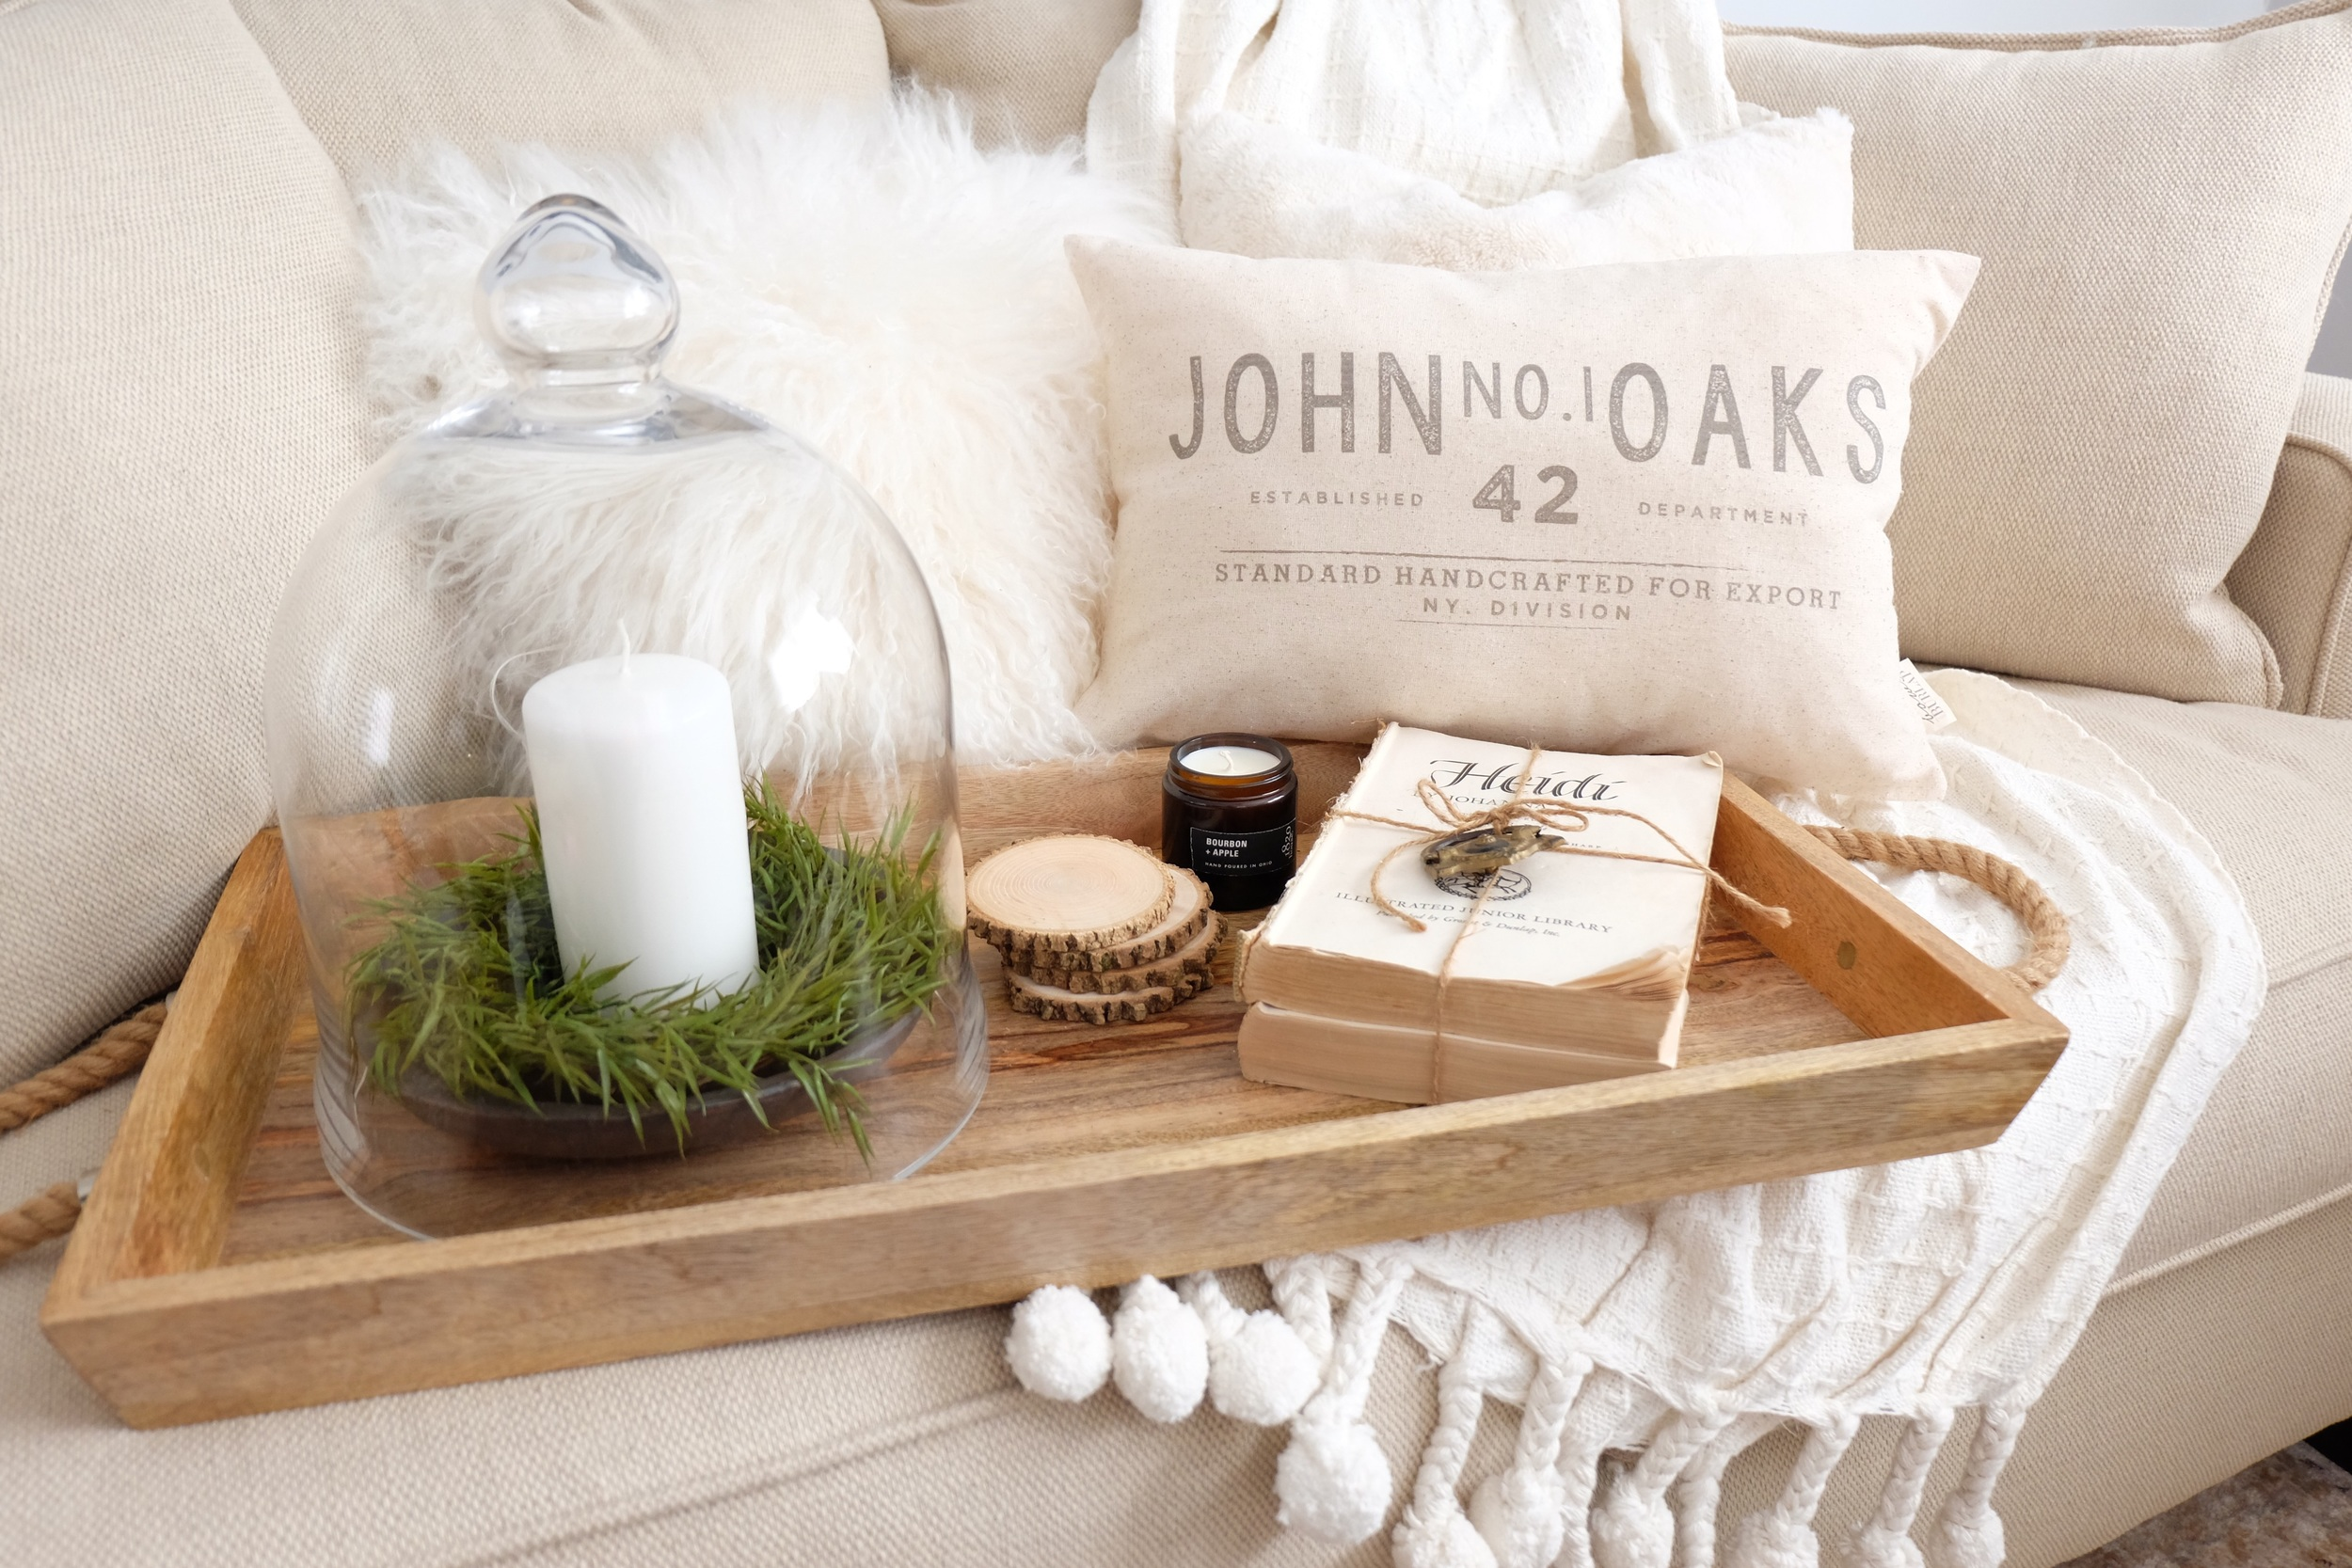 Everything!!   (A candle from 1820 House, A pillow cover from Bows & Burlap, home sign from Vintage Metal Co. A pom Pom throw, an 8x10 home framable print, a set of 4 wooden coasters, a replica dough bowl, and a Carolina fill wreath!)